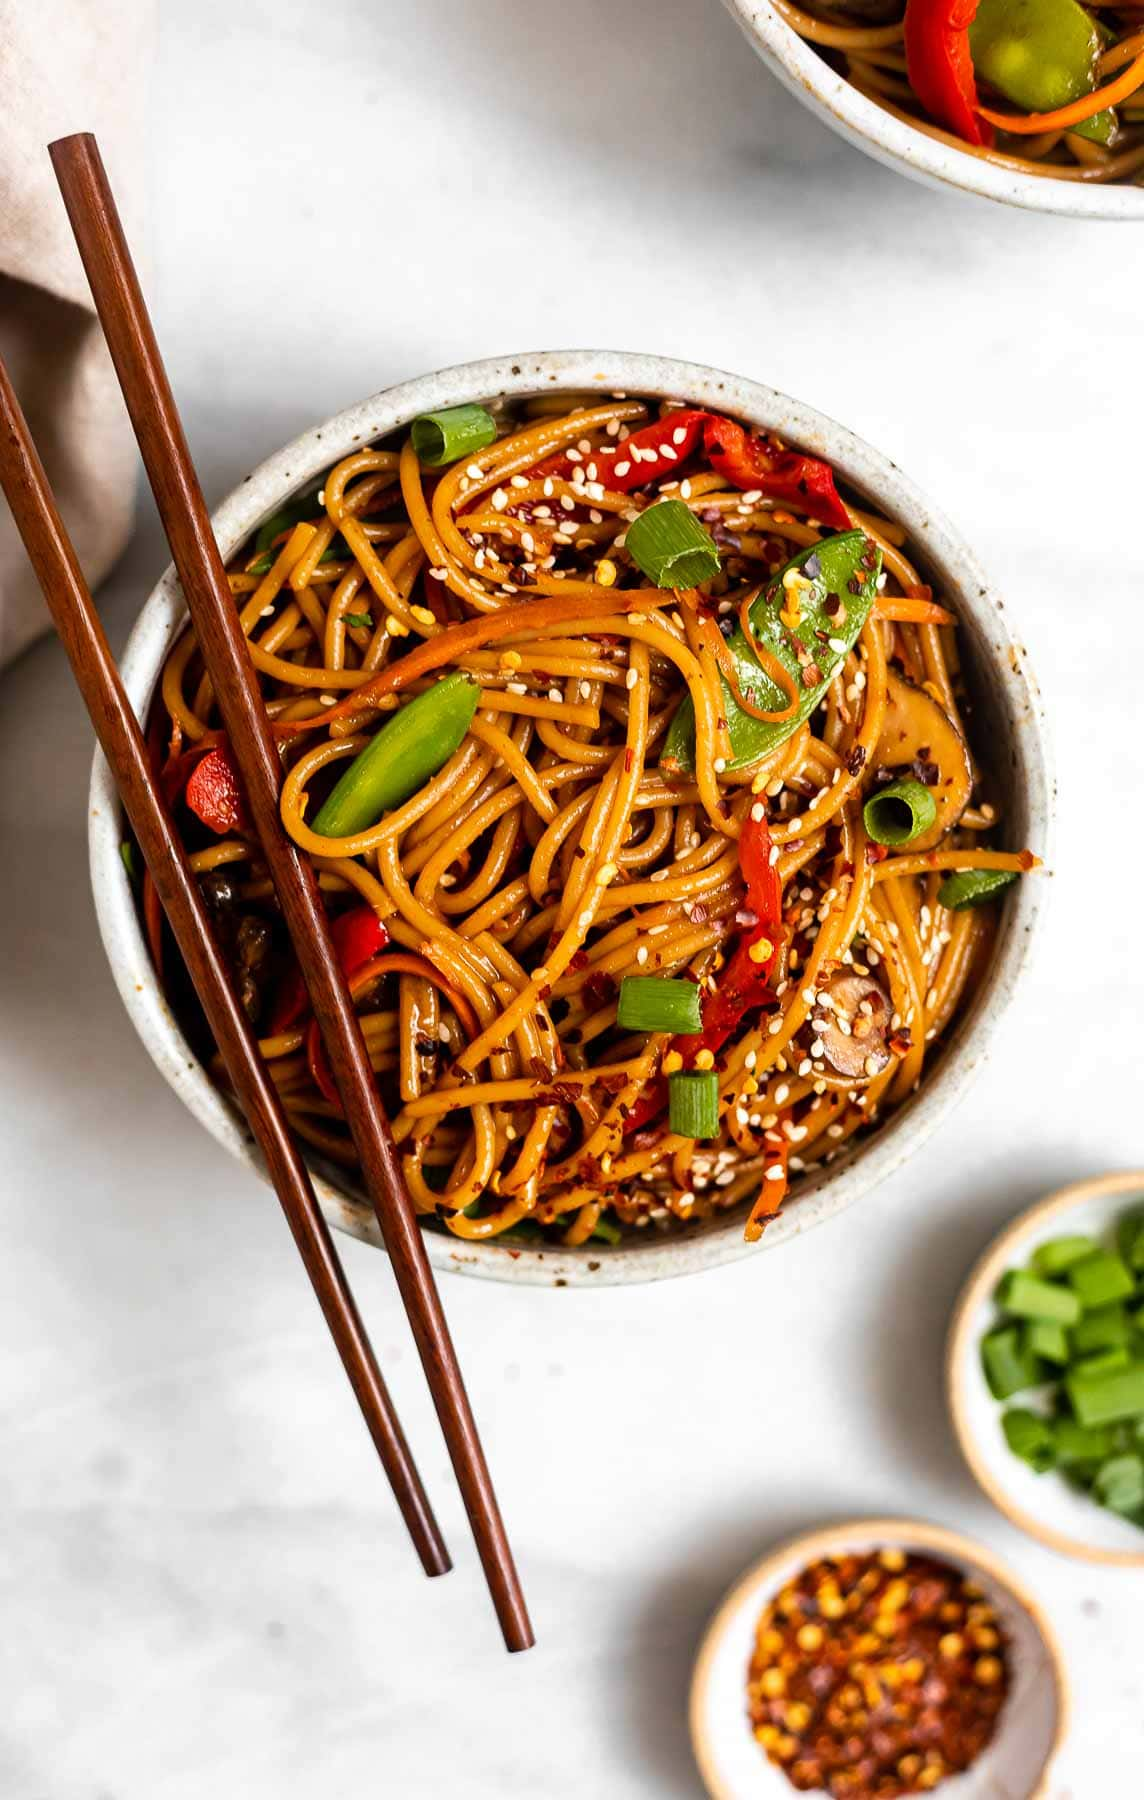 Vegetable lo mein with chopsticks on the side of the bowl.